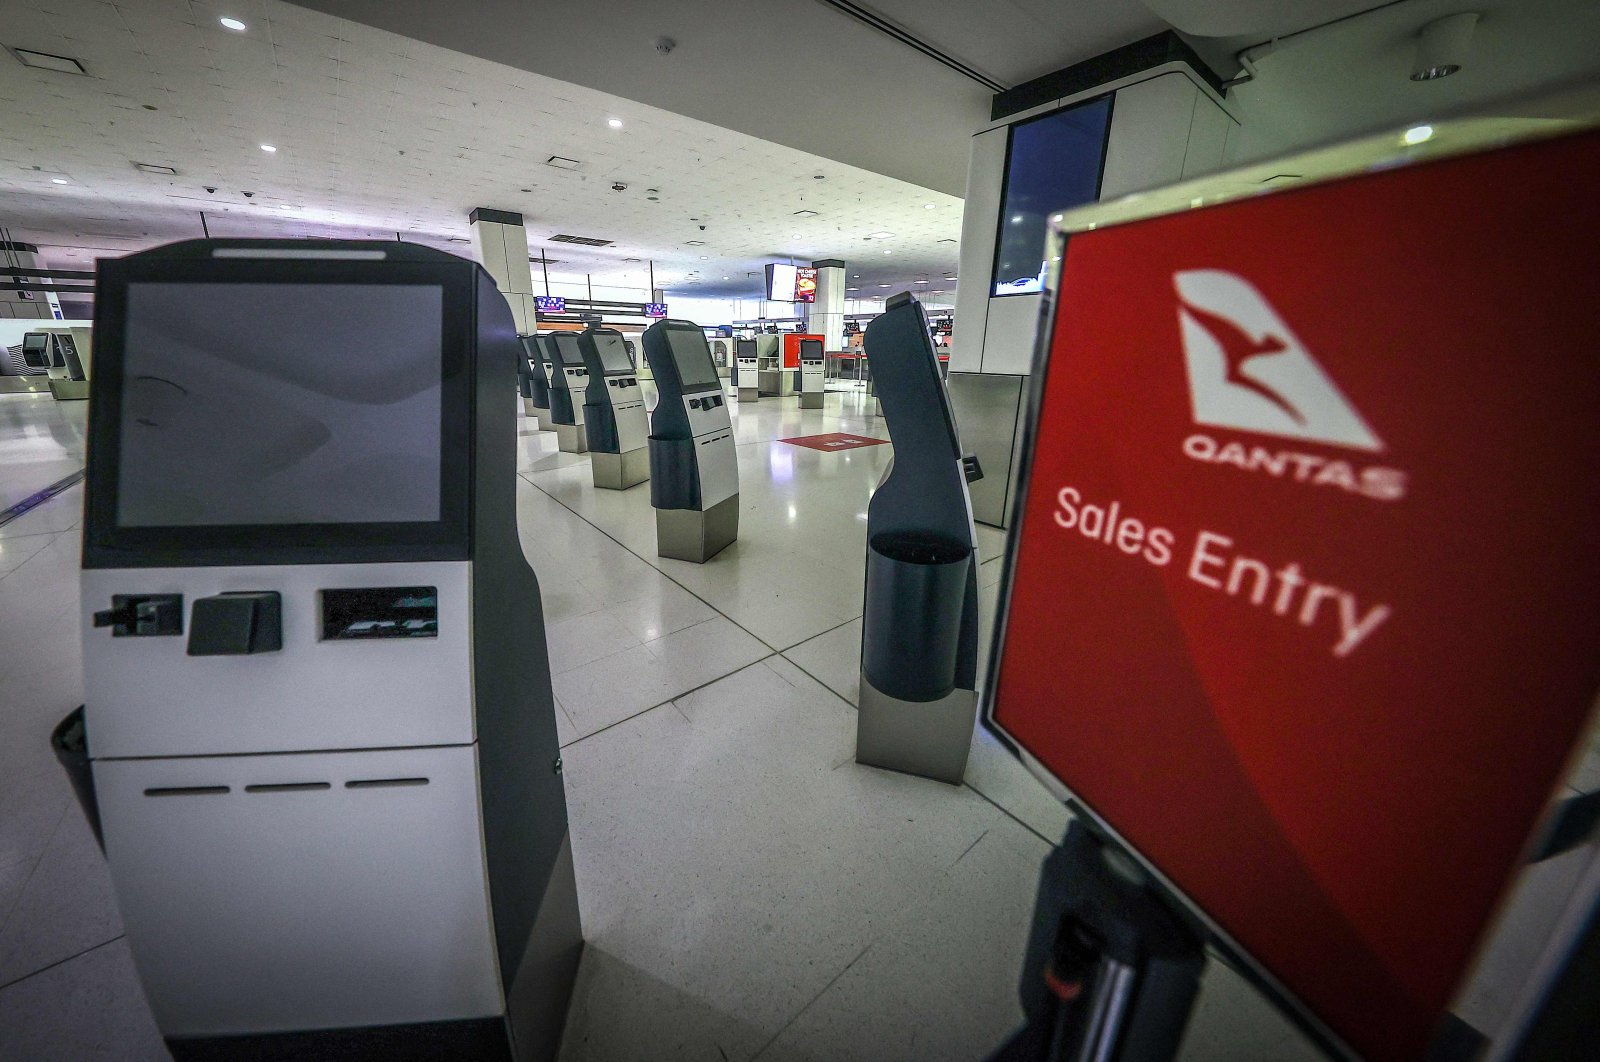 The Qantas Airways check-in area in the departures area of the Sydney International Airport in Sydney, Australia, Sept. 29, 2020. (AFP Photo)